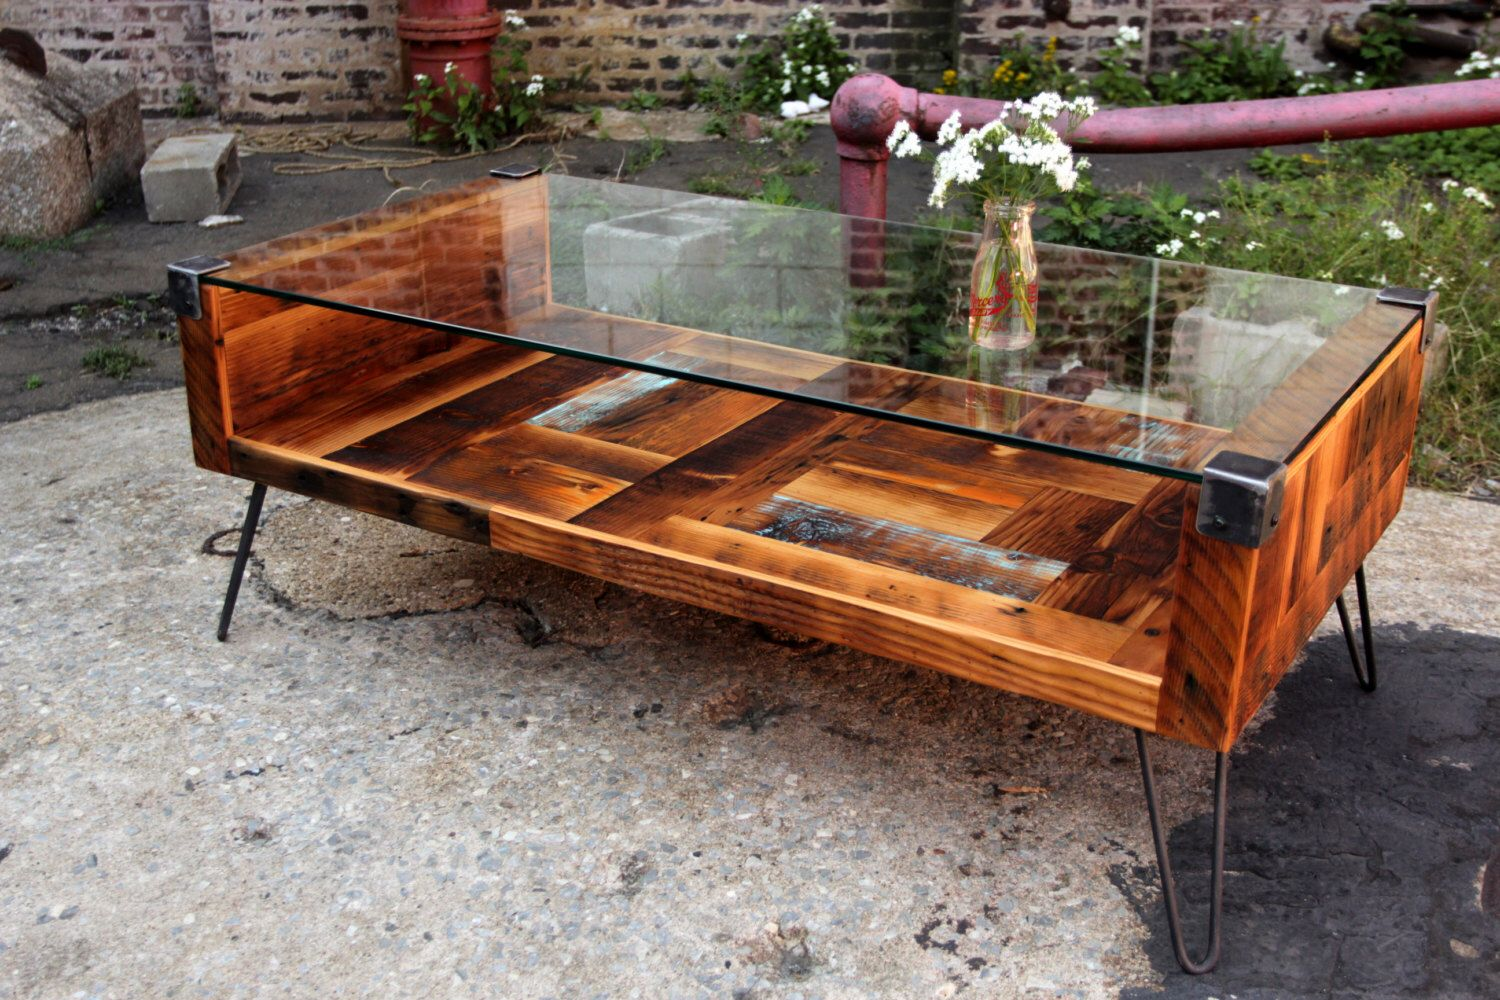 Reclaimed Wood And Tempered Glass Top Coffee Table By RecycledBrooklyn On  Etsy Https://